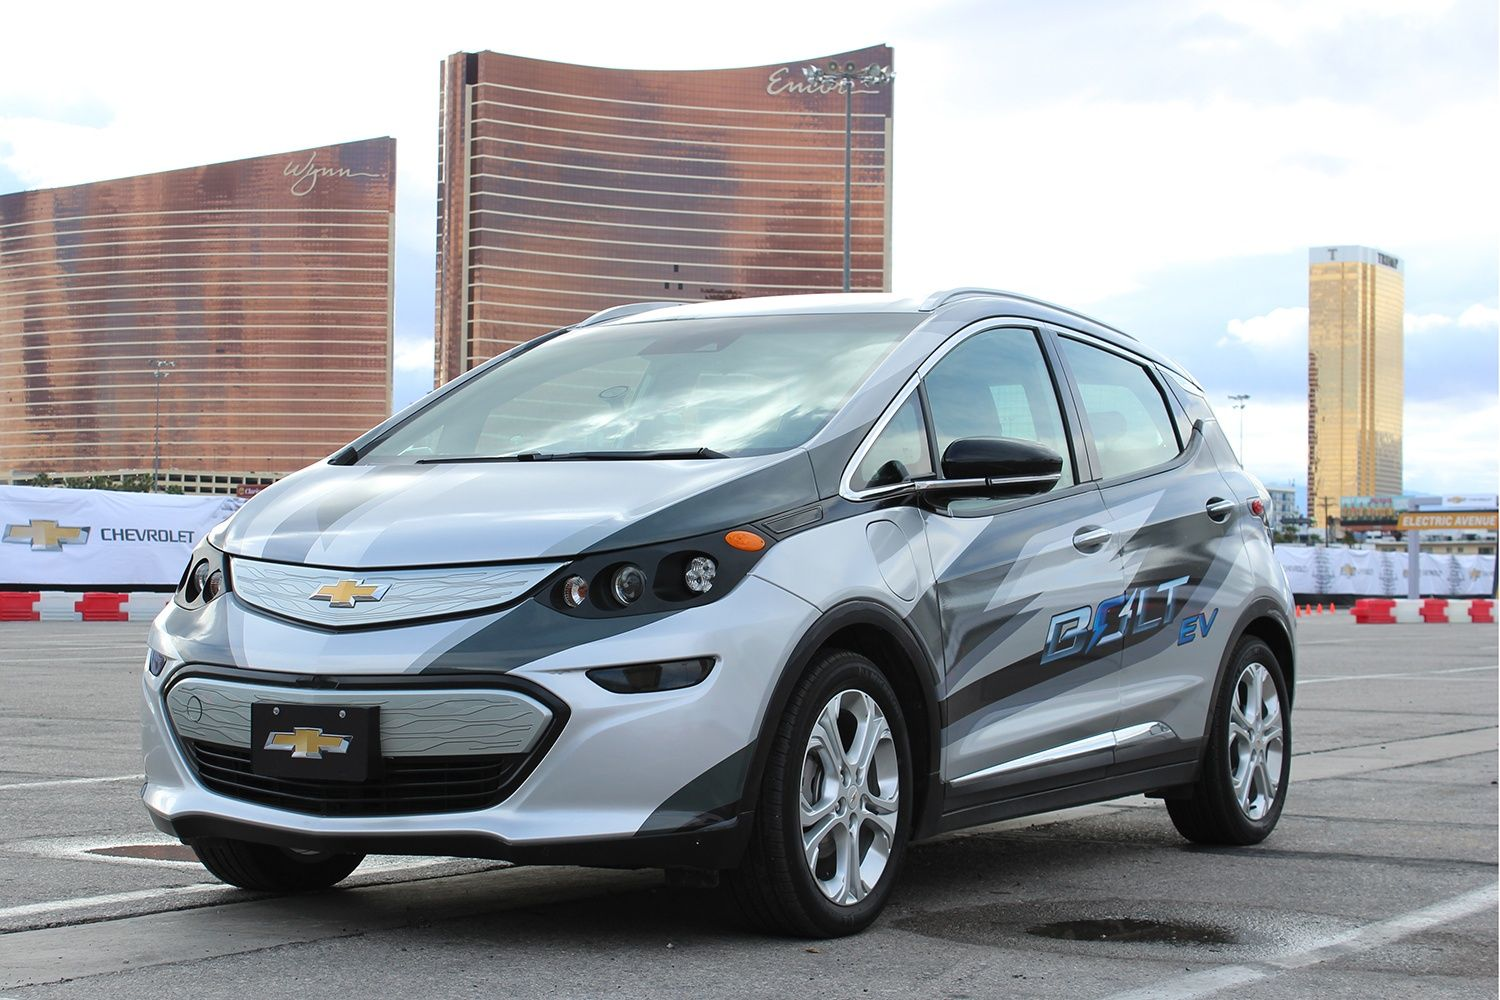 Awesome Chevy Bolt Ev 2016